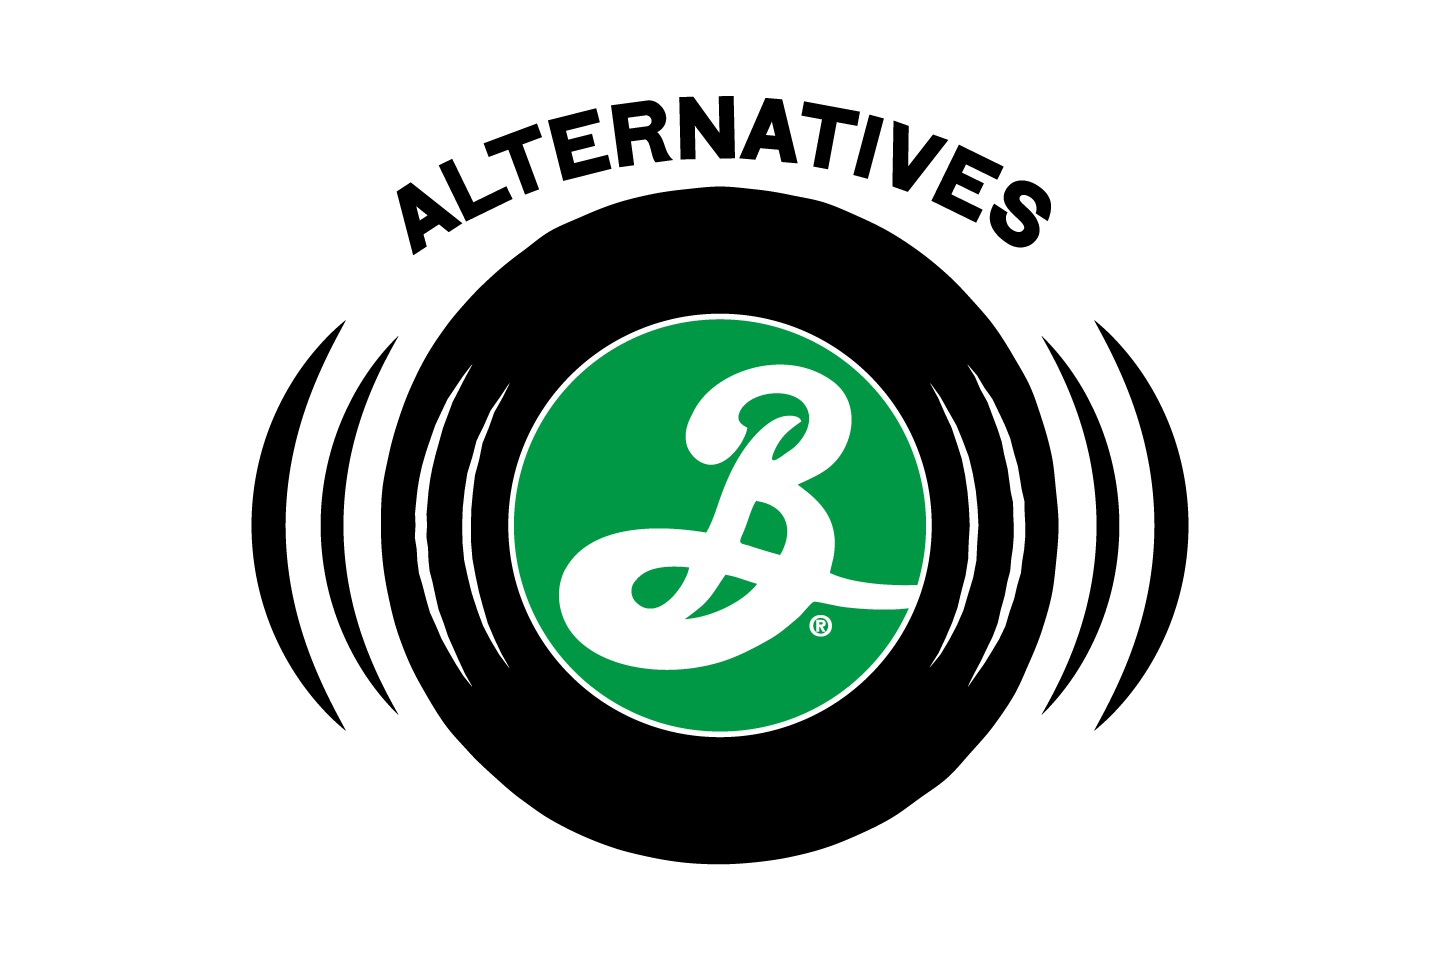 Brooklyn Brewery Alternatives Project